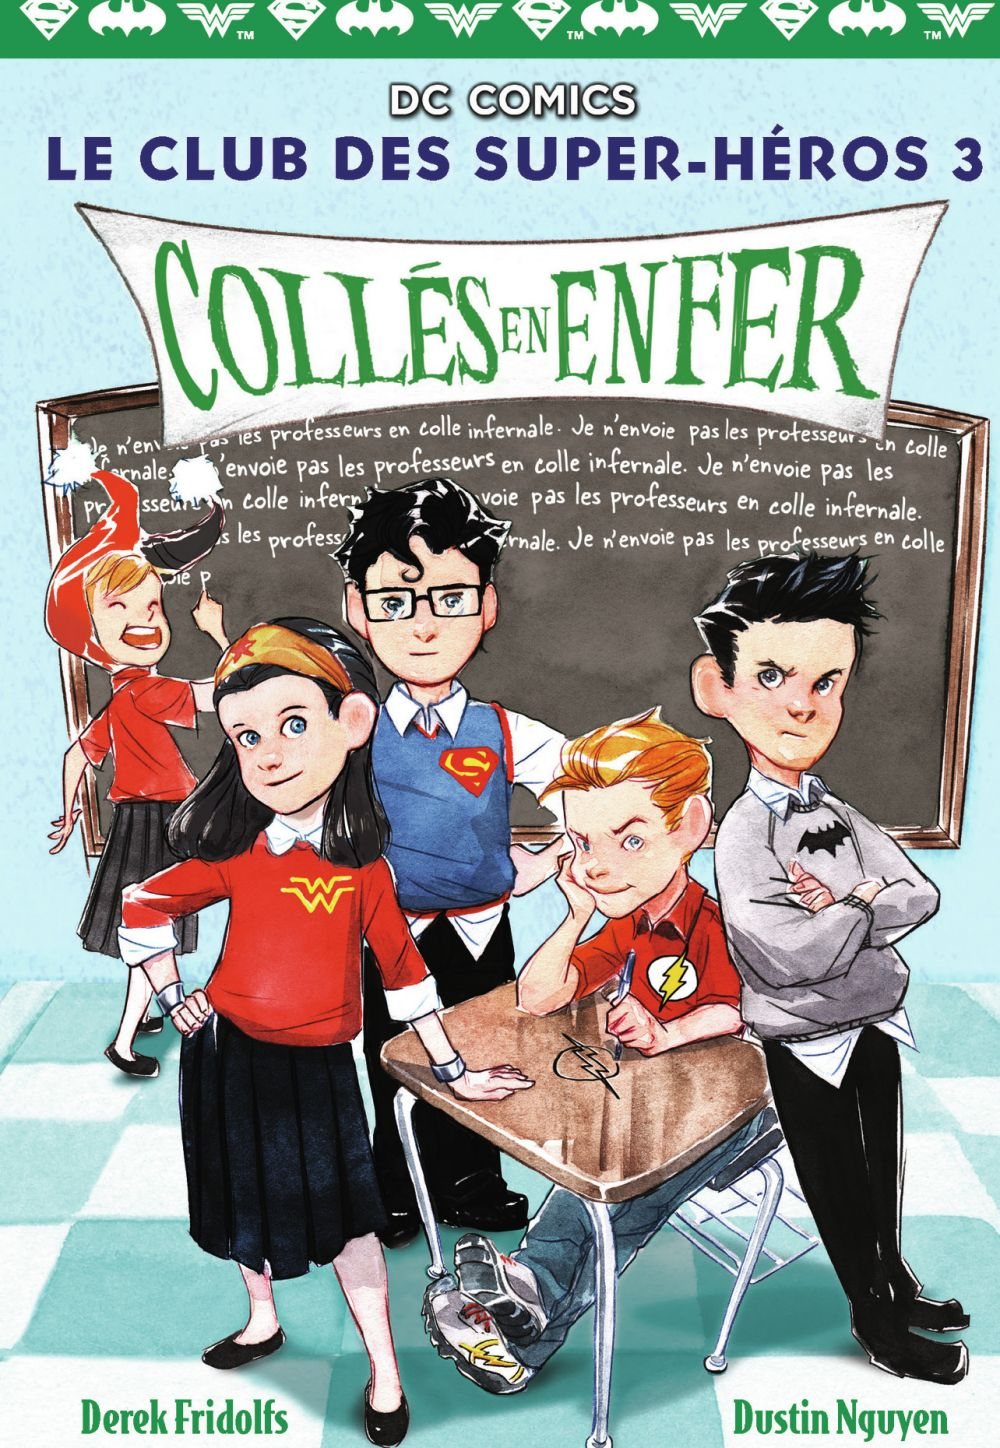 Le Club des Super-Héros (Tome 3) - Collés en enfer